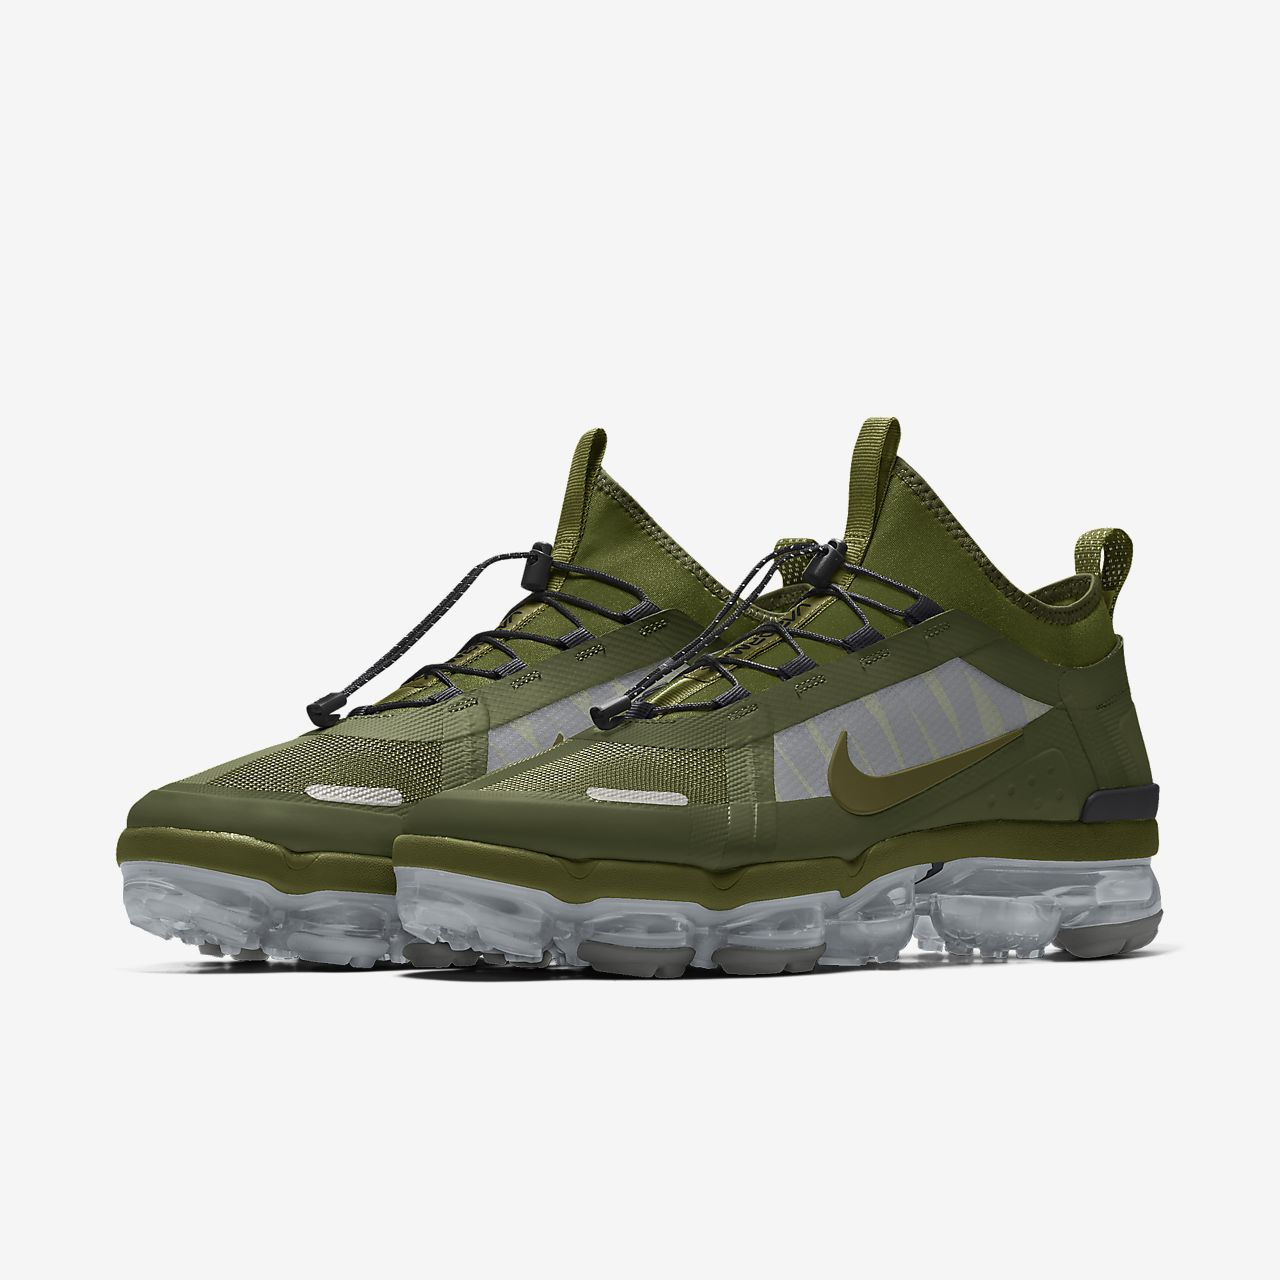 The Nike Air VaporMax 2019 By You Custom Shoe | Nikey shoes